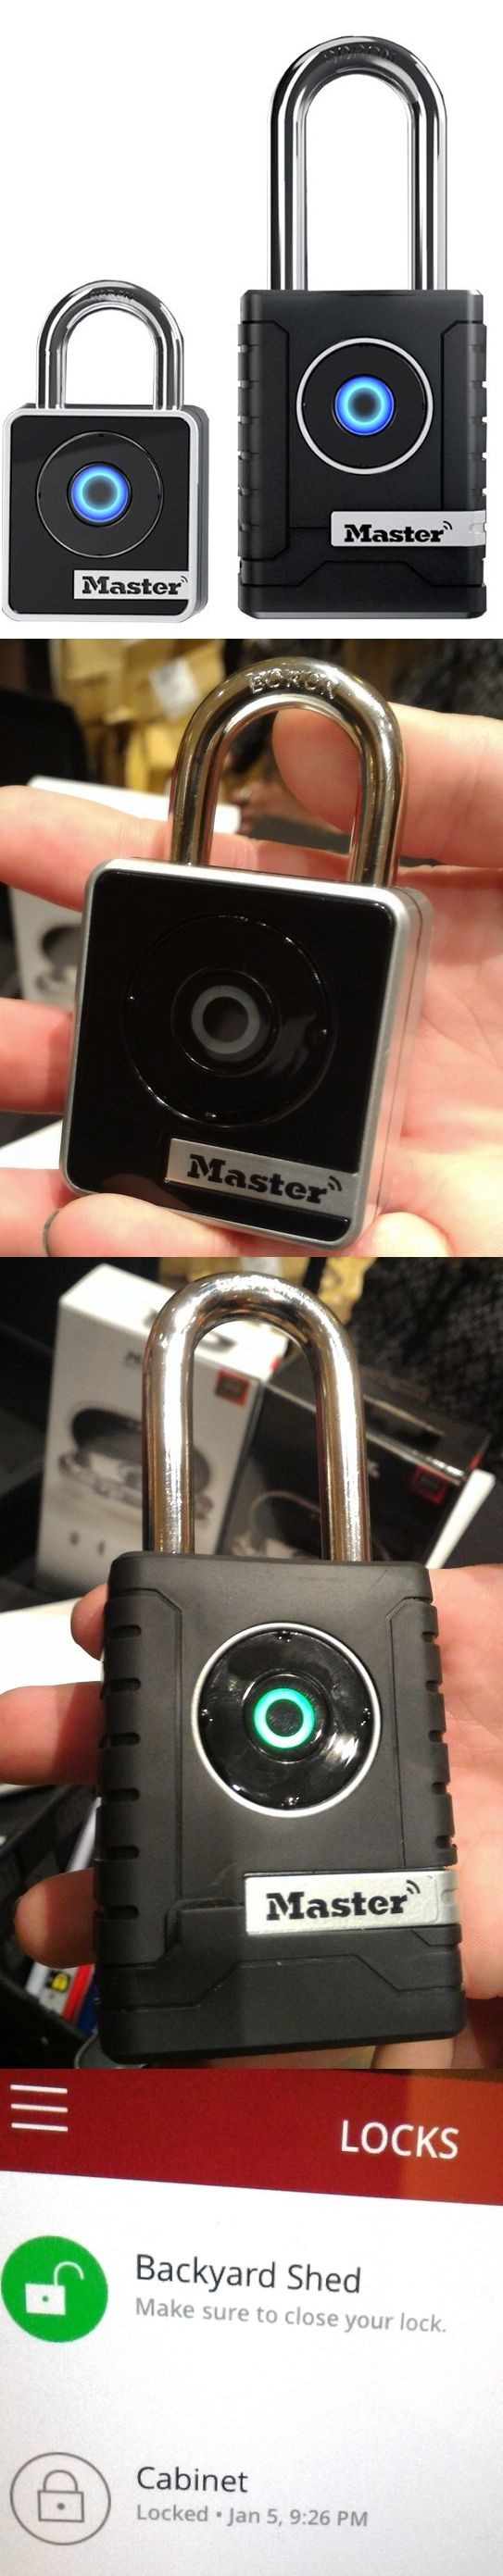 The Master Lock Bluetooth Smart Padlock can be opened wirelessly with a phone or tablet or by tapping out a code on its front panel rocker button. If the lock needs to be opened while you're not around, you can grant temporary access to anyone with the @masterlock Vault eLocks app on their mobile device or send them a temporary button code. The Master Lock Bluetooth Smart Padlock comes in indoor (Model 4400, $70) and outdoor (Model 4401, $89) versions.CLICK THE PIC #CES2016